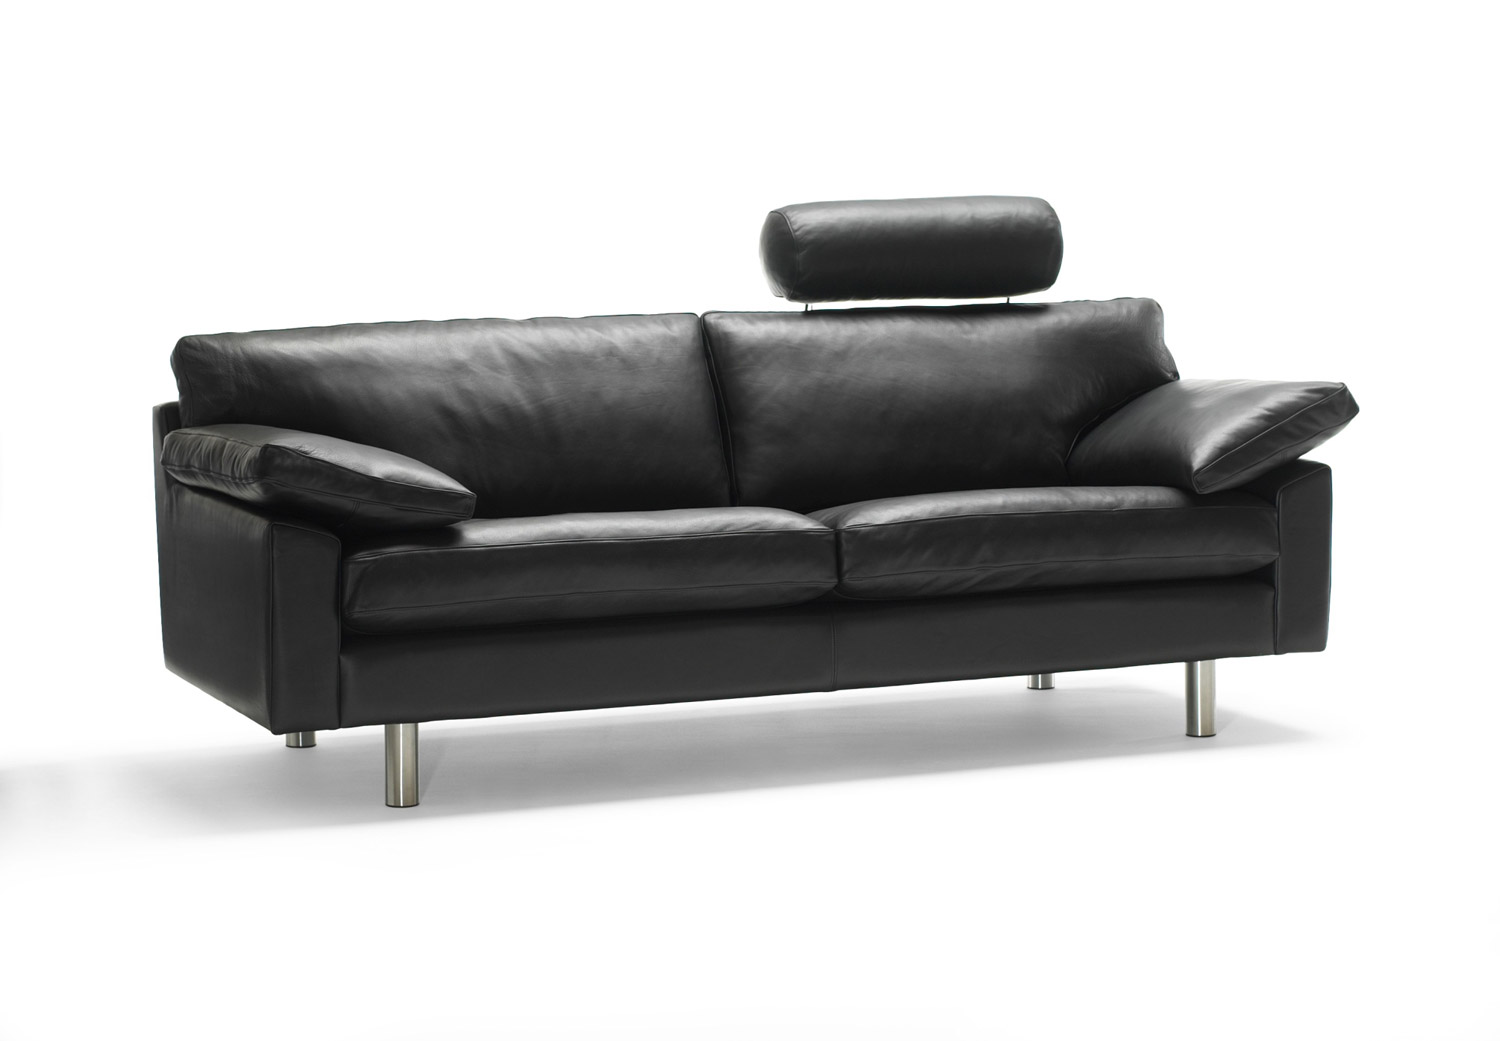 eilersen sofa baseline m chaiselong sectional sofas in houston tx udsalg